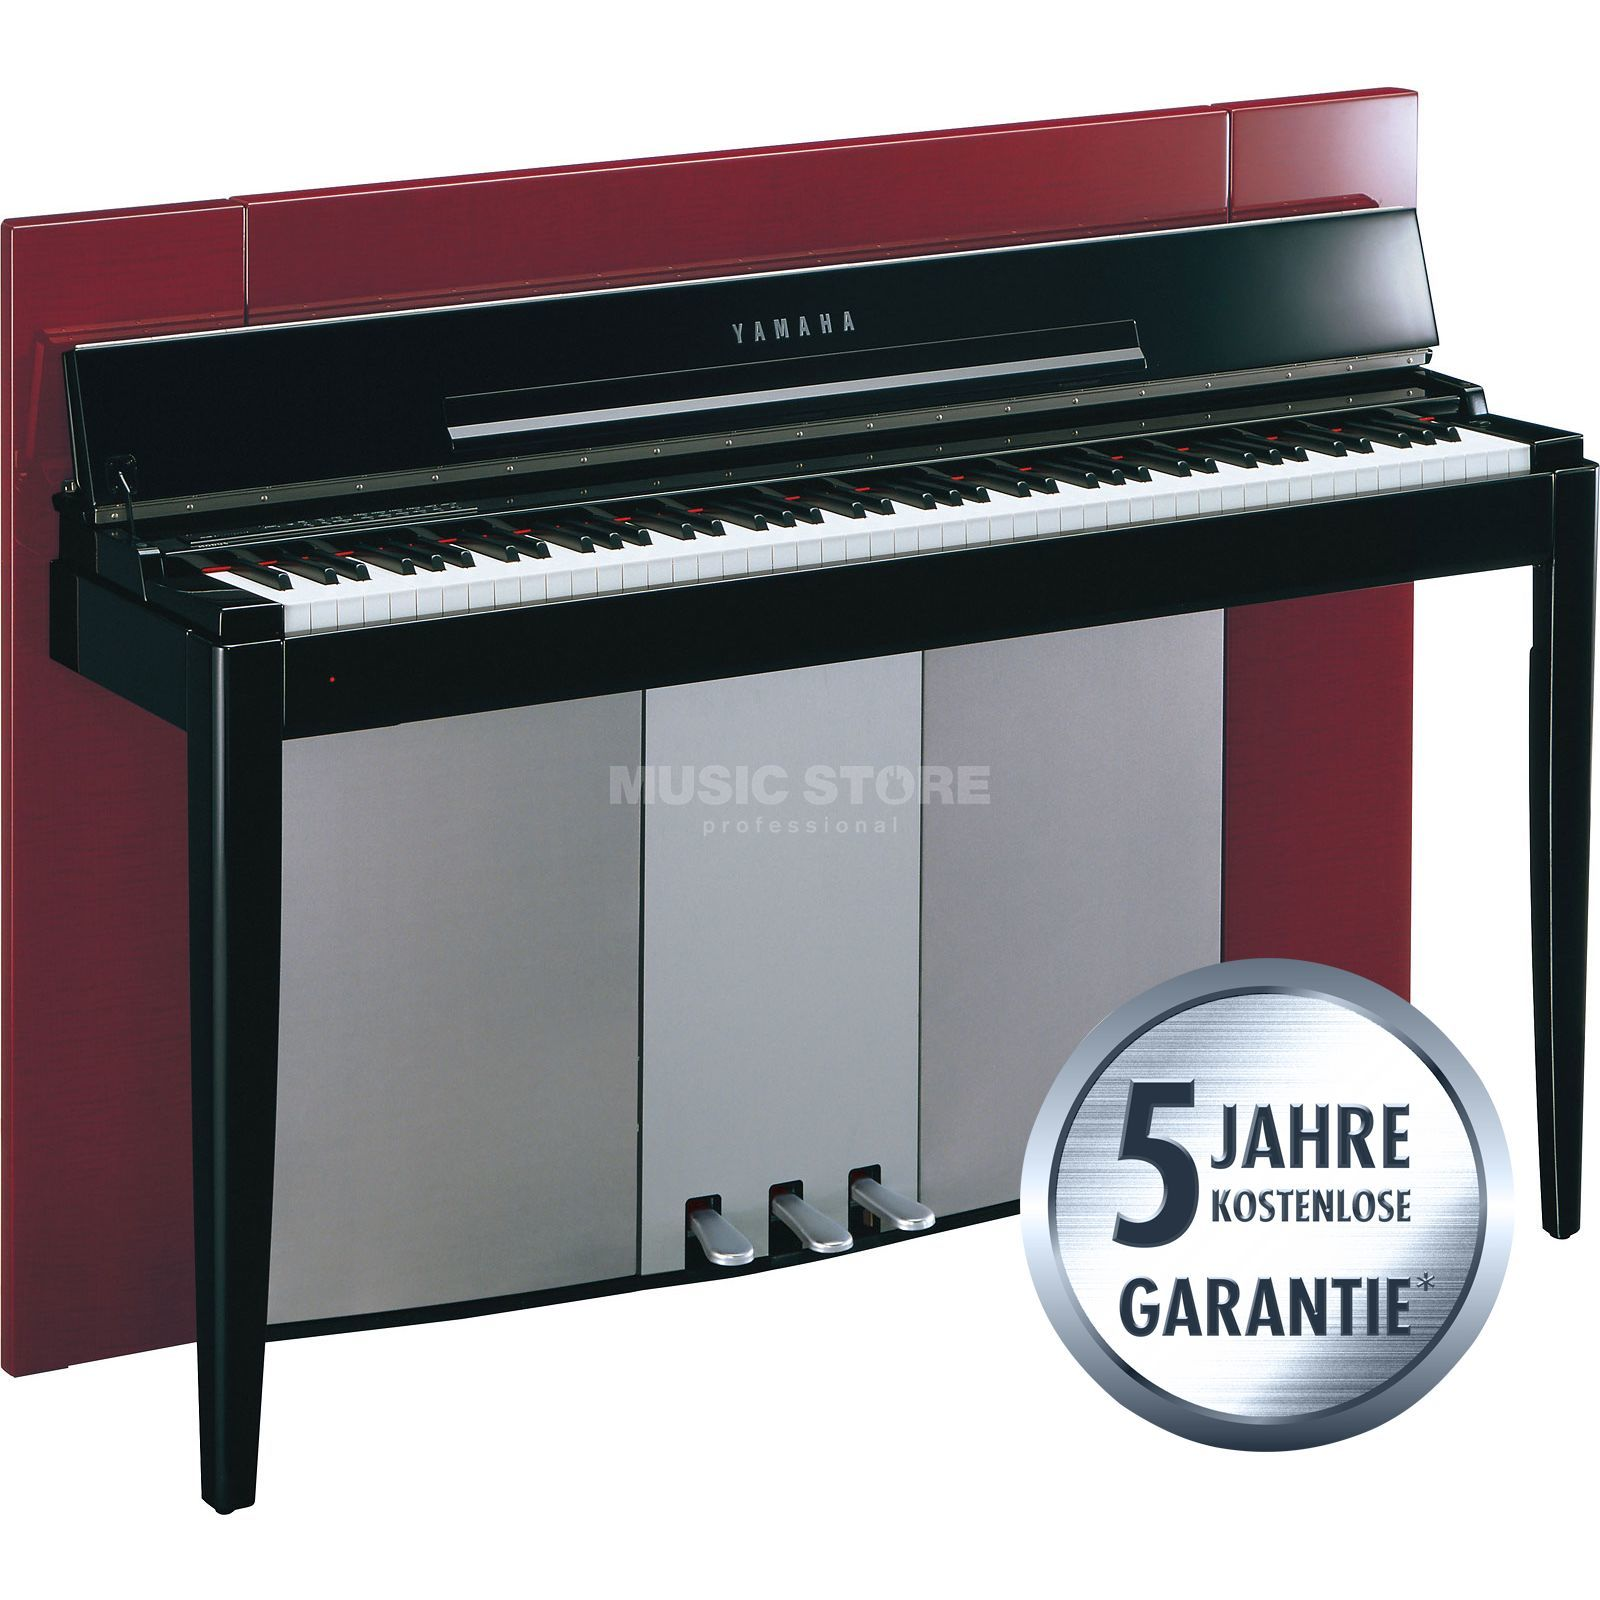 Yamaha Modus F02 PR Digital Piano Polished Red Изображение товара